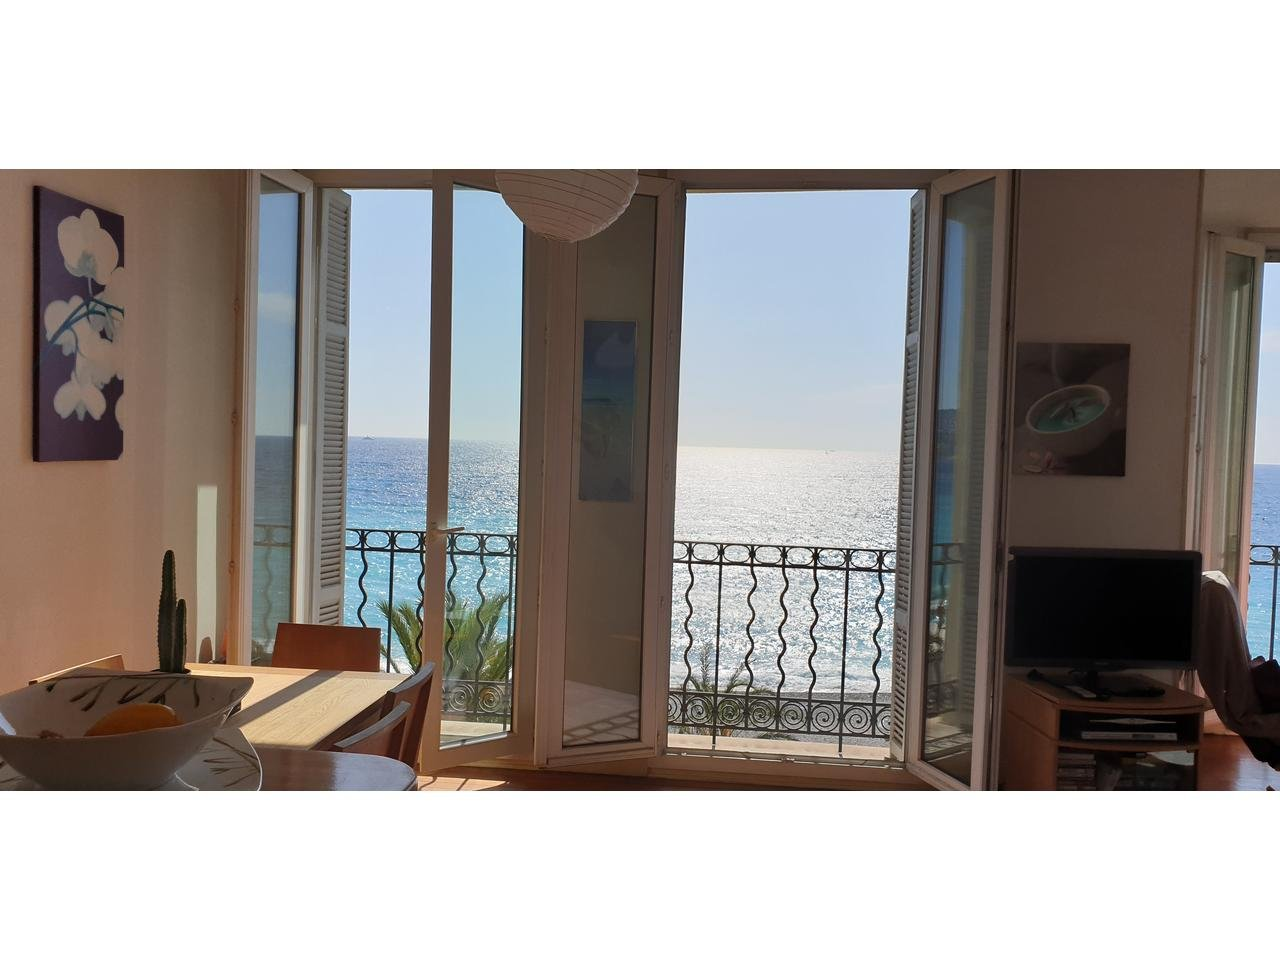 Appartement  2 Rooms 60.77m2  for sale   395 000 €